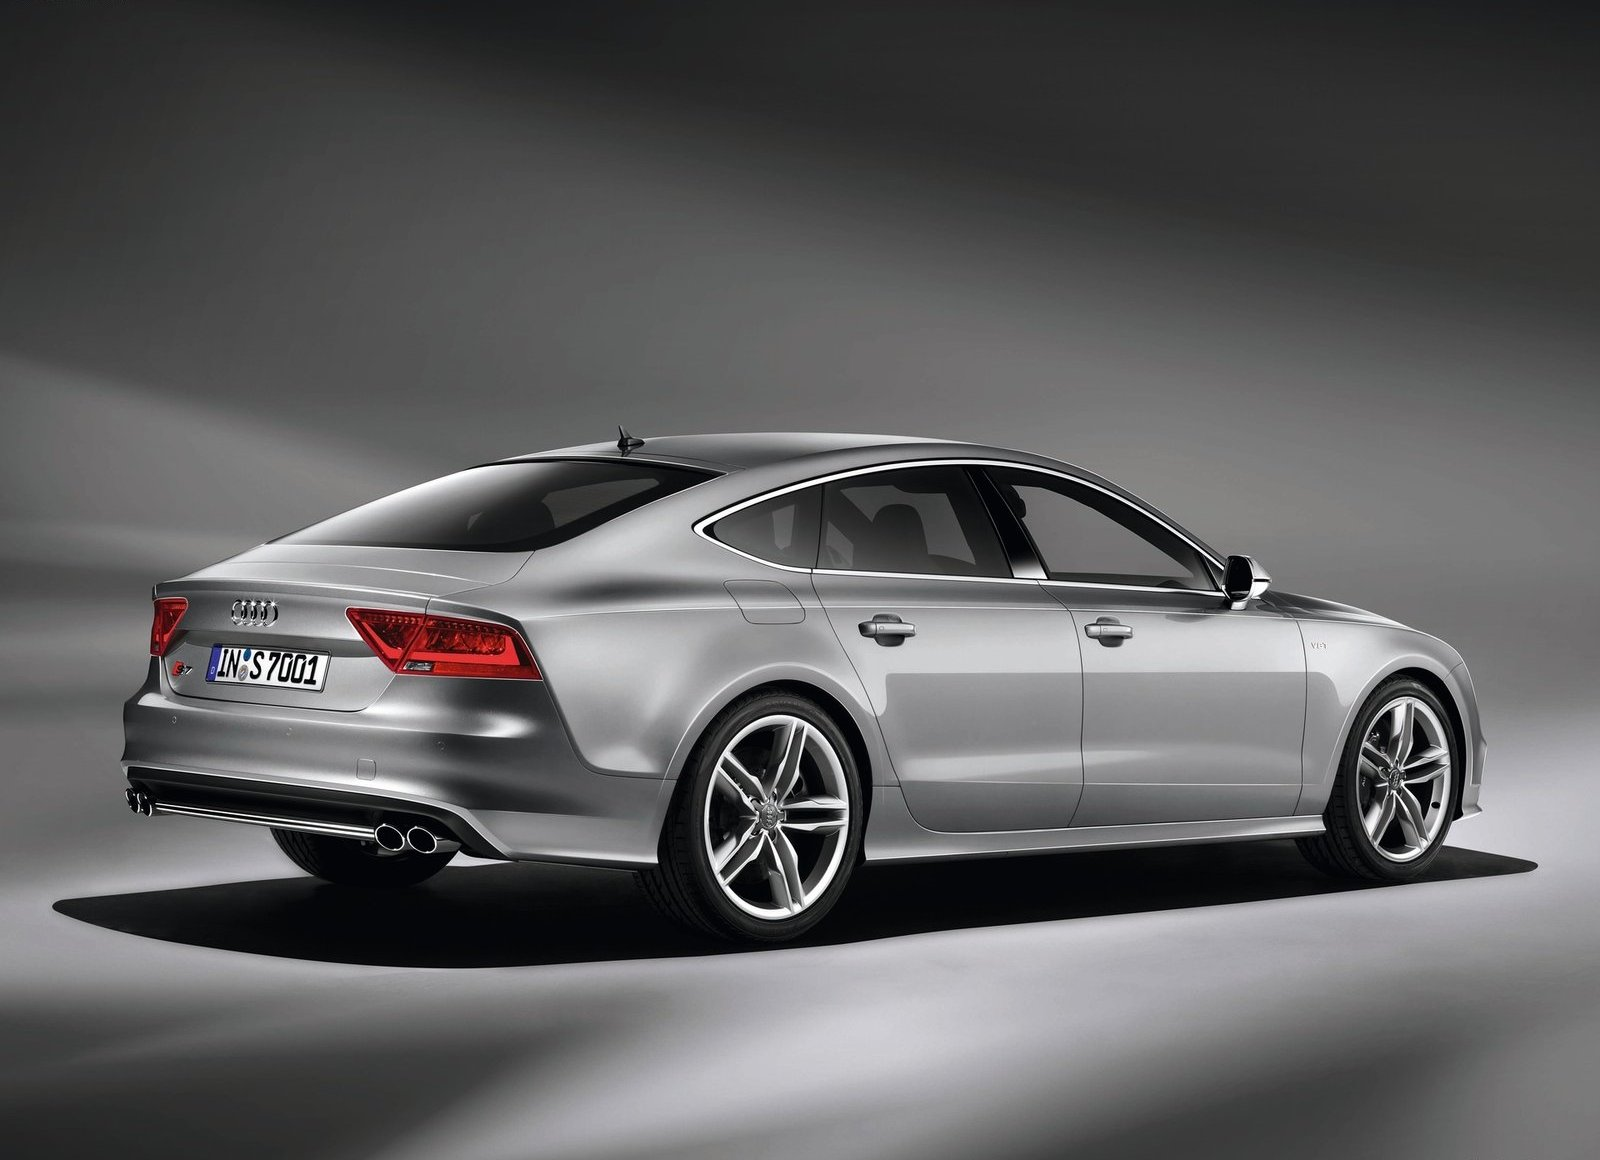 Pictures of audi s7